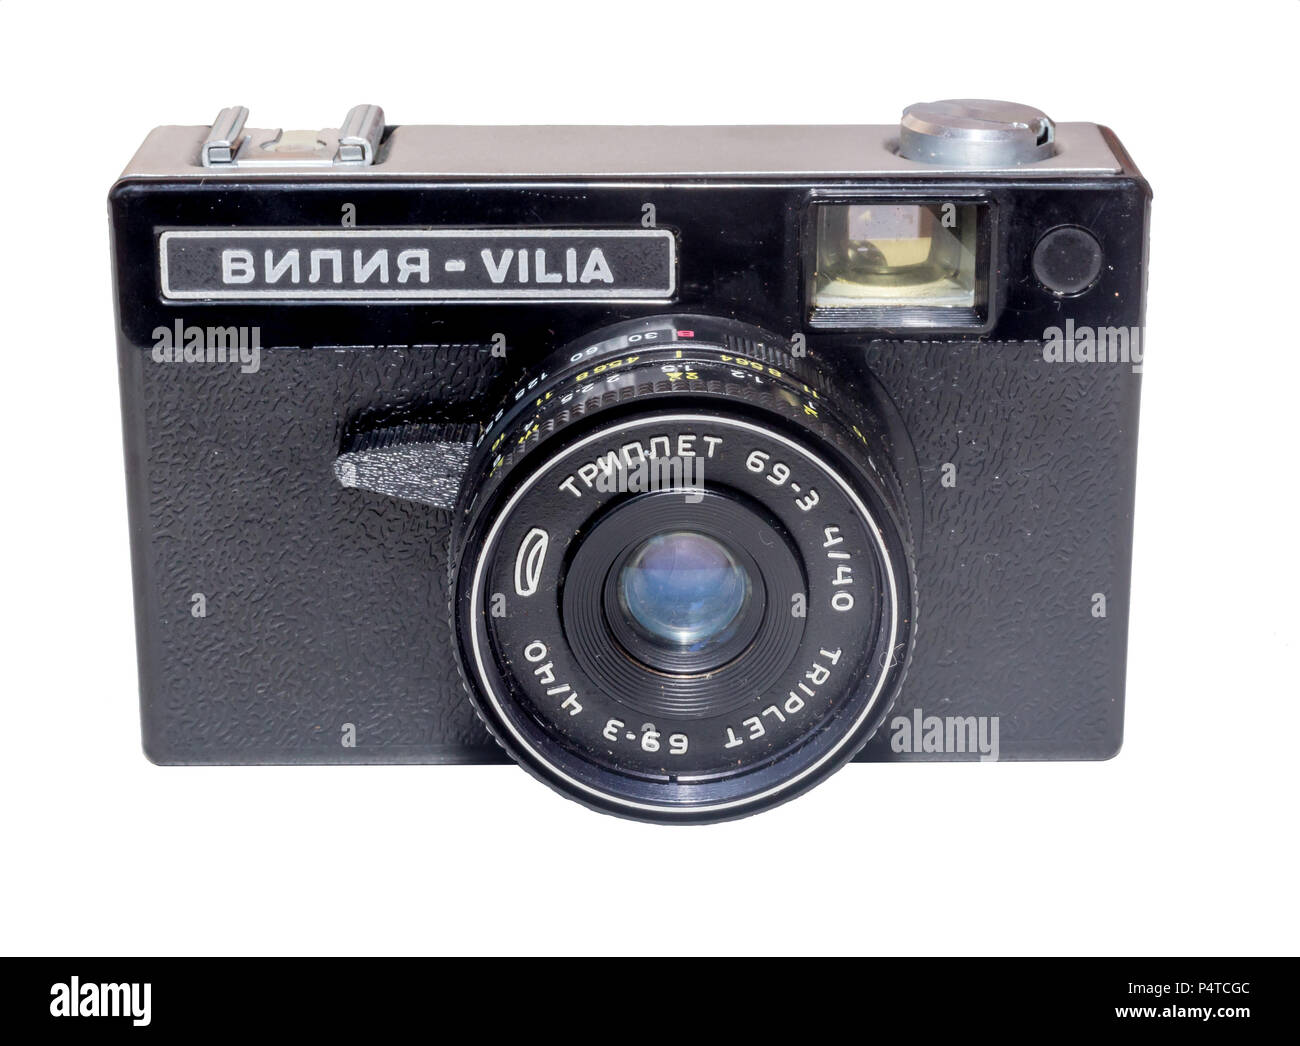 Russia, Vladivostok, 11/06/2017. Film camera VILIA with lens Triplet 69-3 40mm f/4. Manufactured by BelOMO (Belarus Optical & Mechanical Association,  - Stock Image